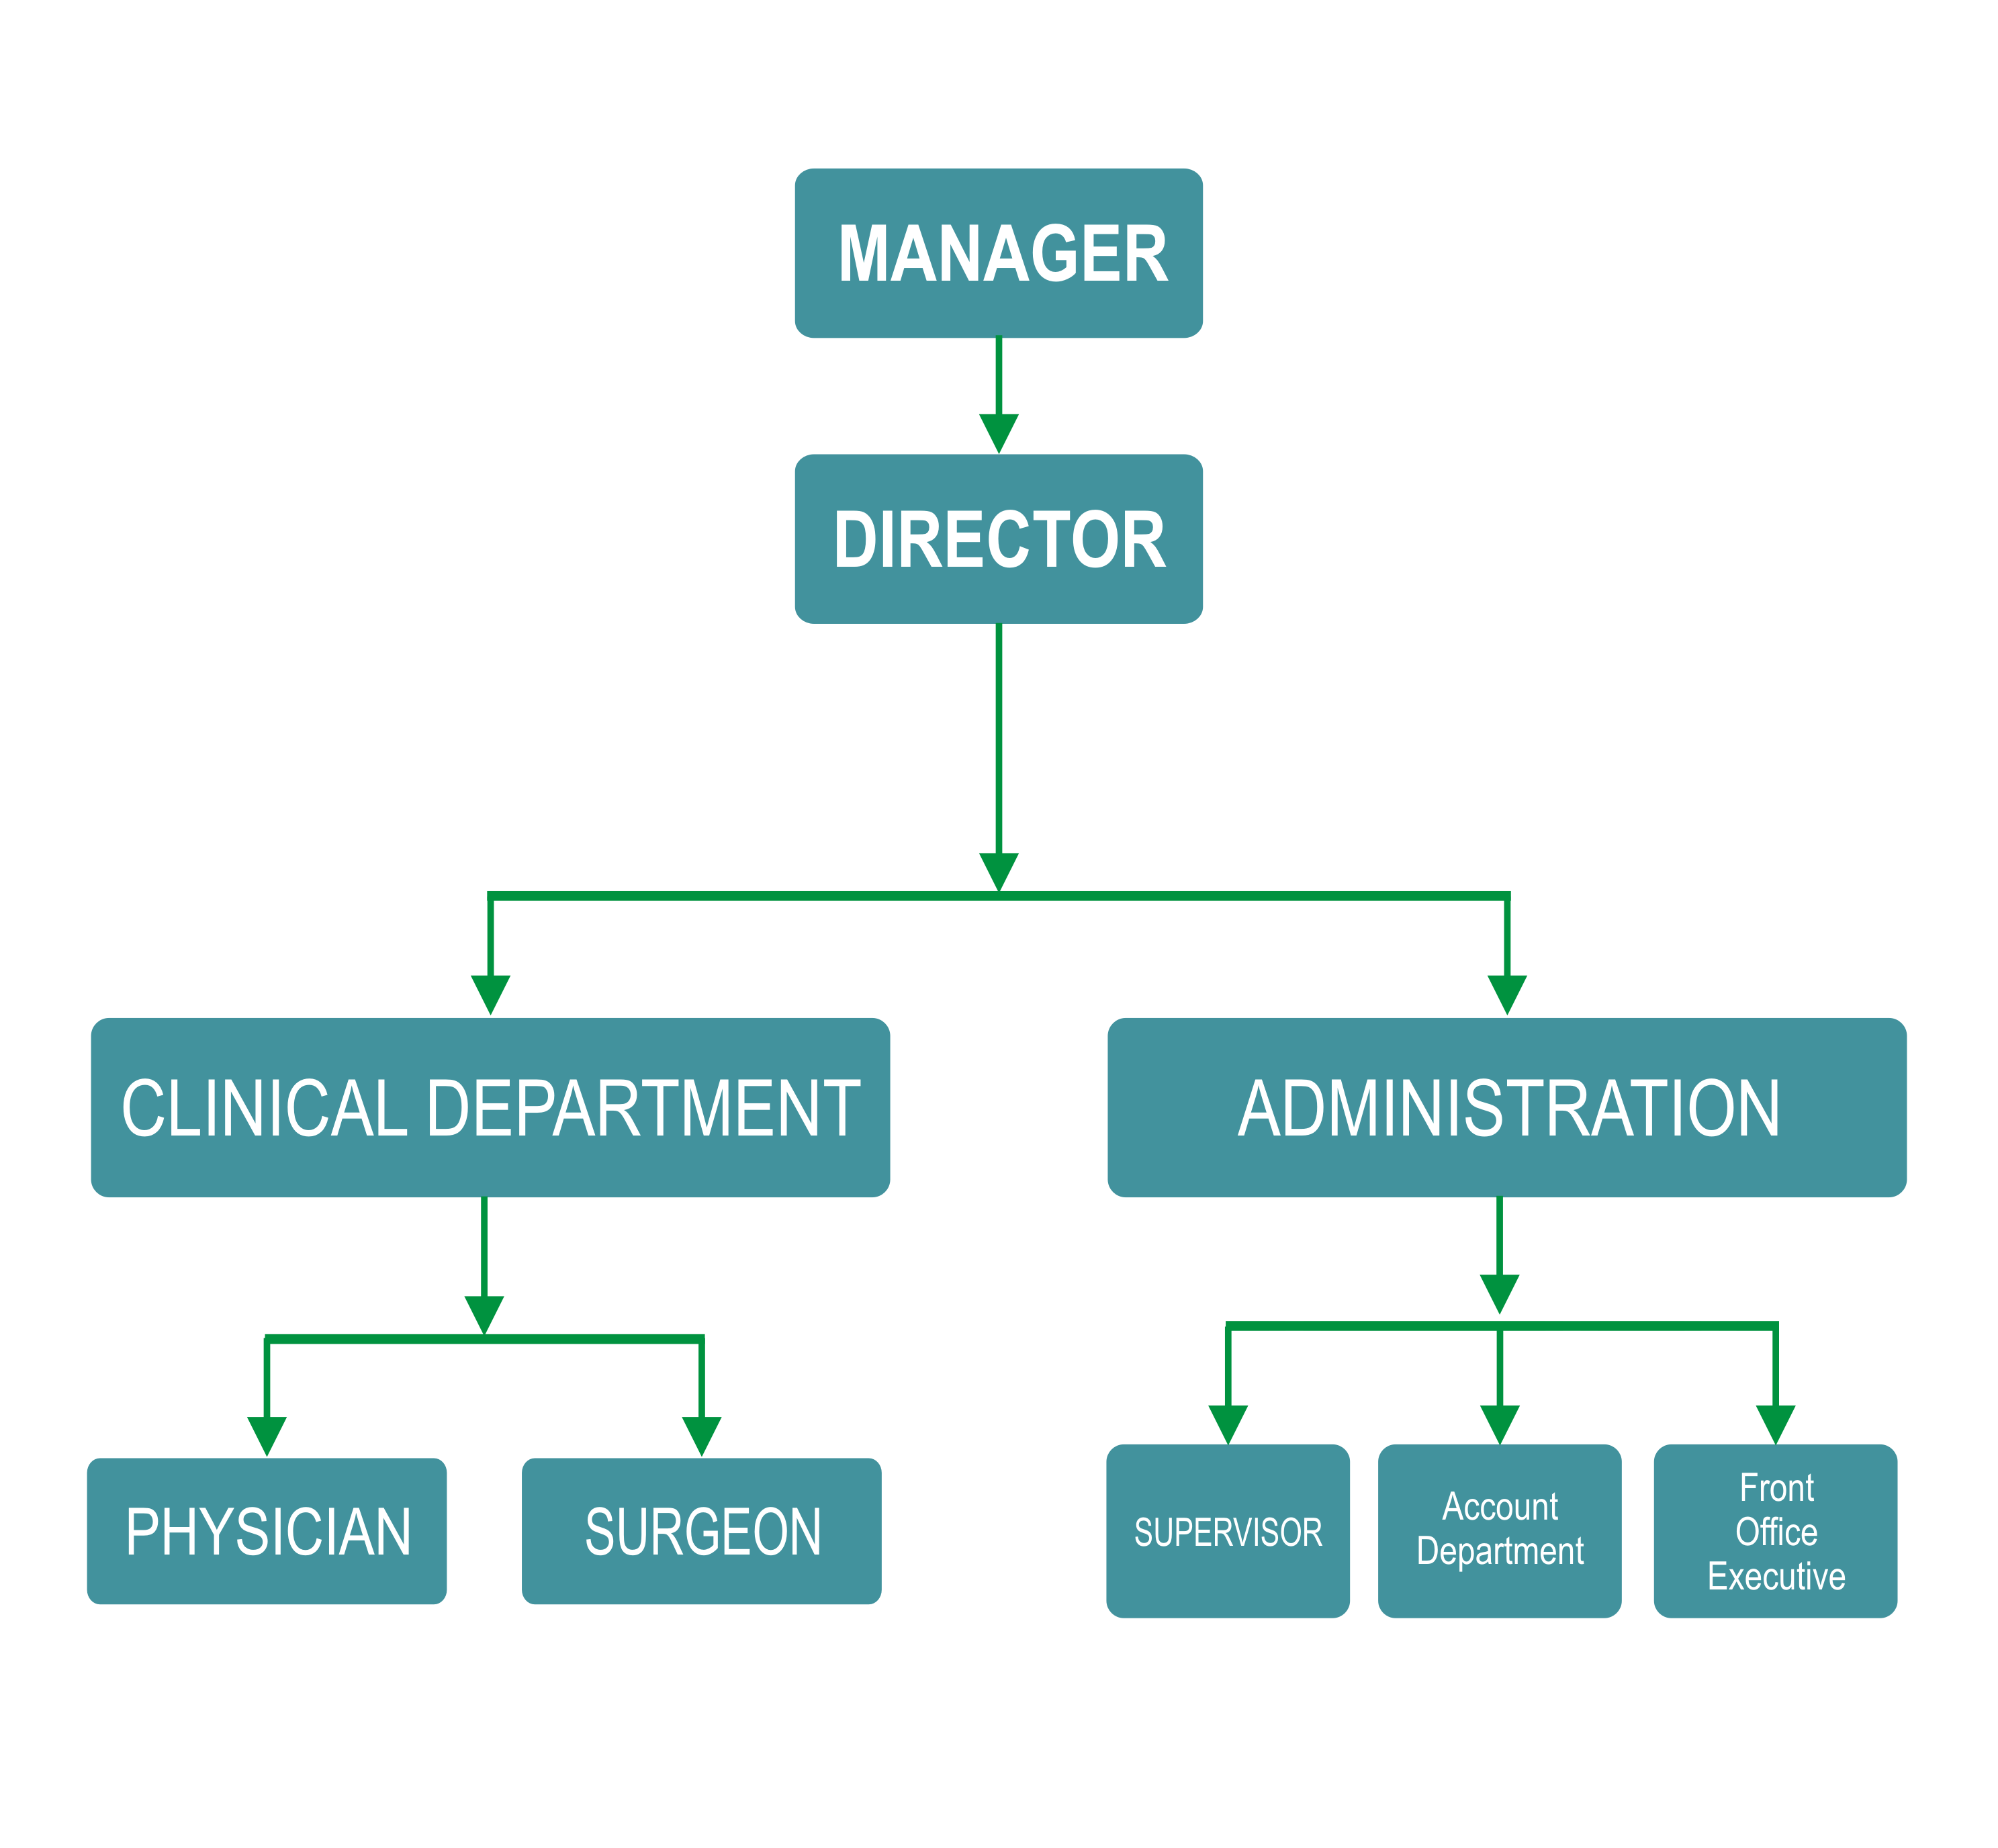 Old fashioned hospital organizational chart ensign administrative suman hospital sultanpur surgical laparoscopic research center altavistaventures Choice Image